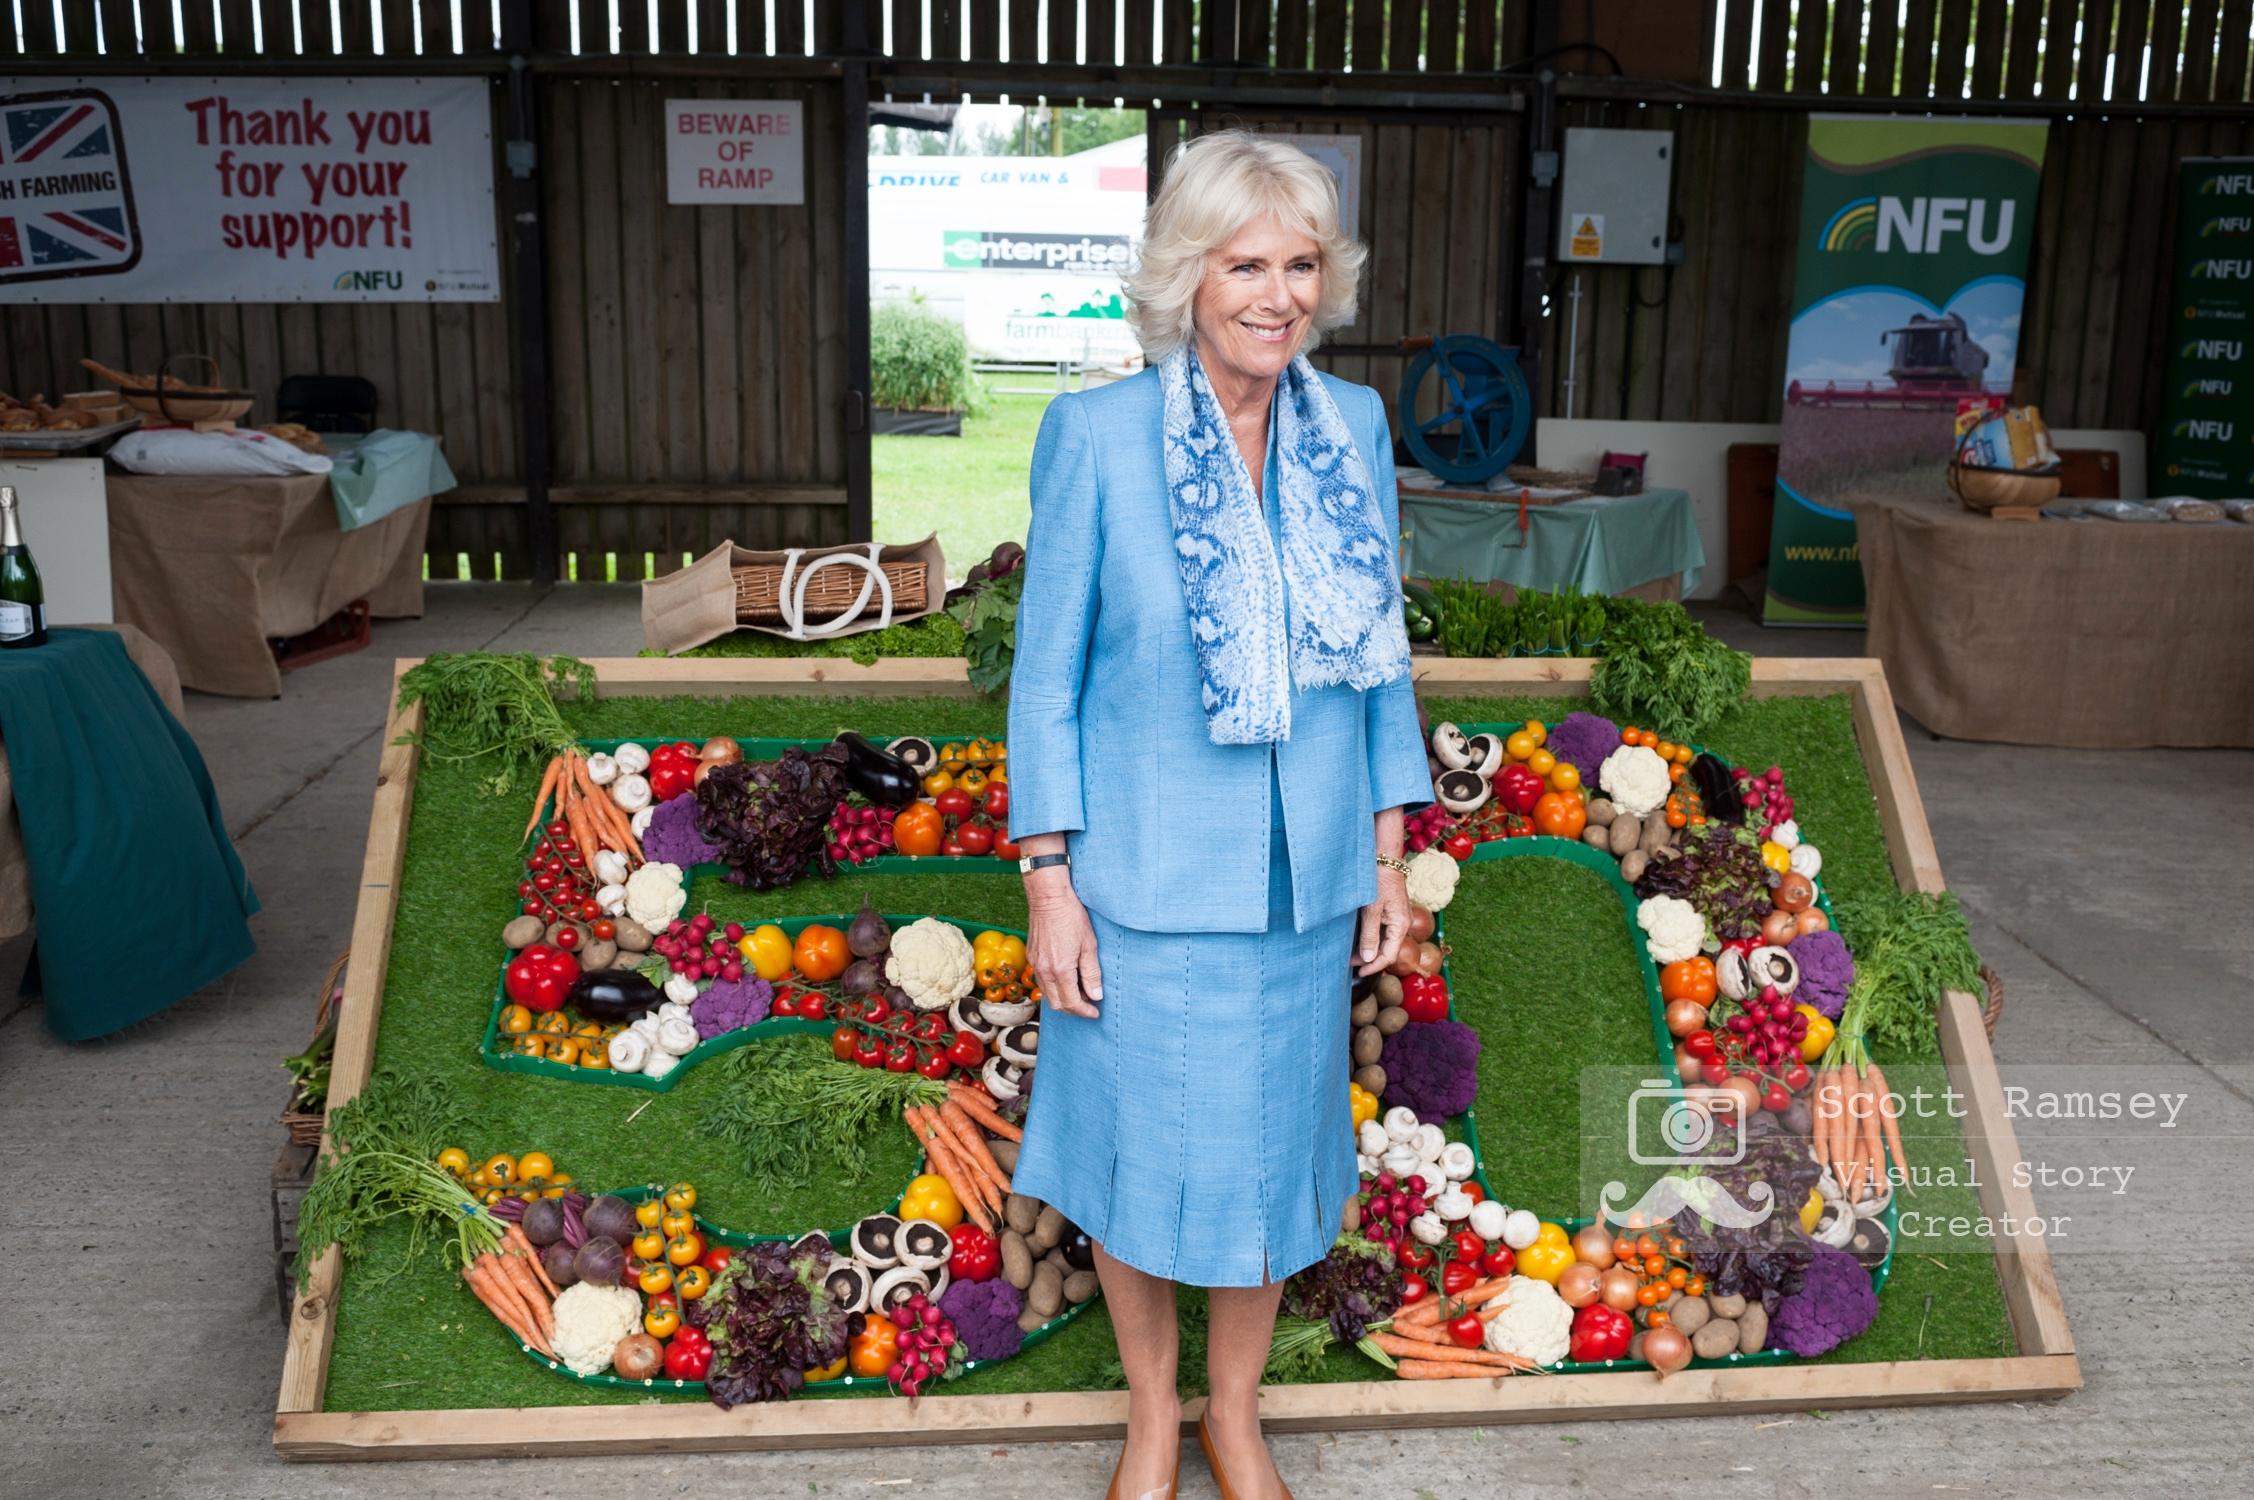 Brighton Photographer Scott Ramsey on assignment at the South Of England Show. HRH, The Duchess Of Cornwall, visits the South Of England Show. Photo © Scott Ramsey.